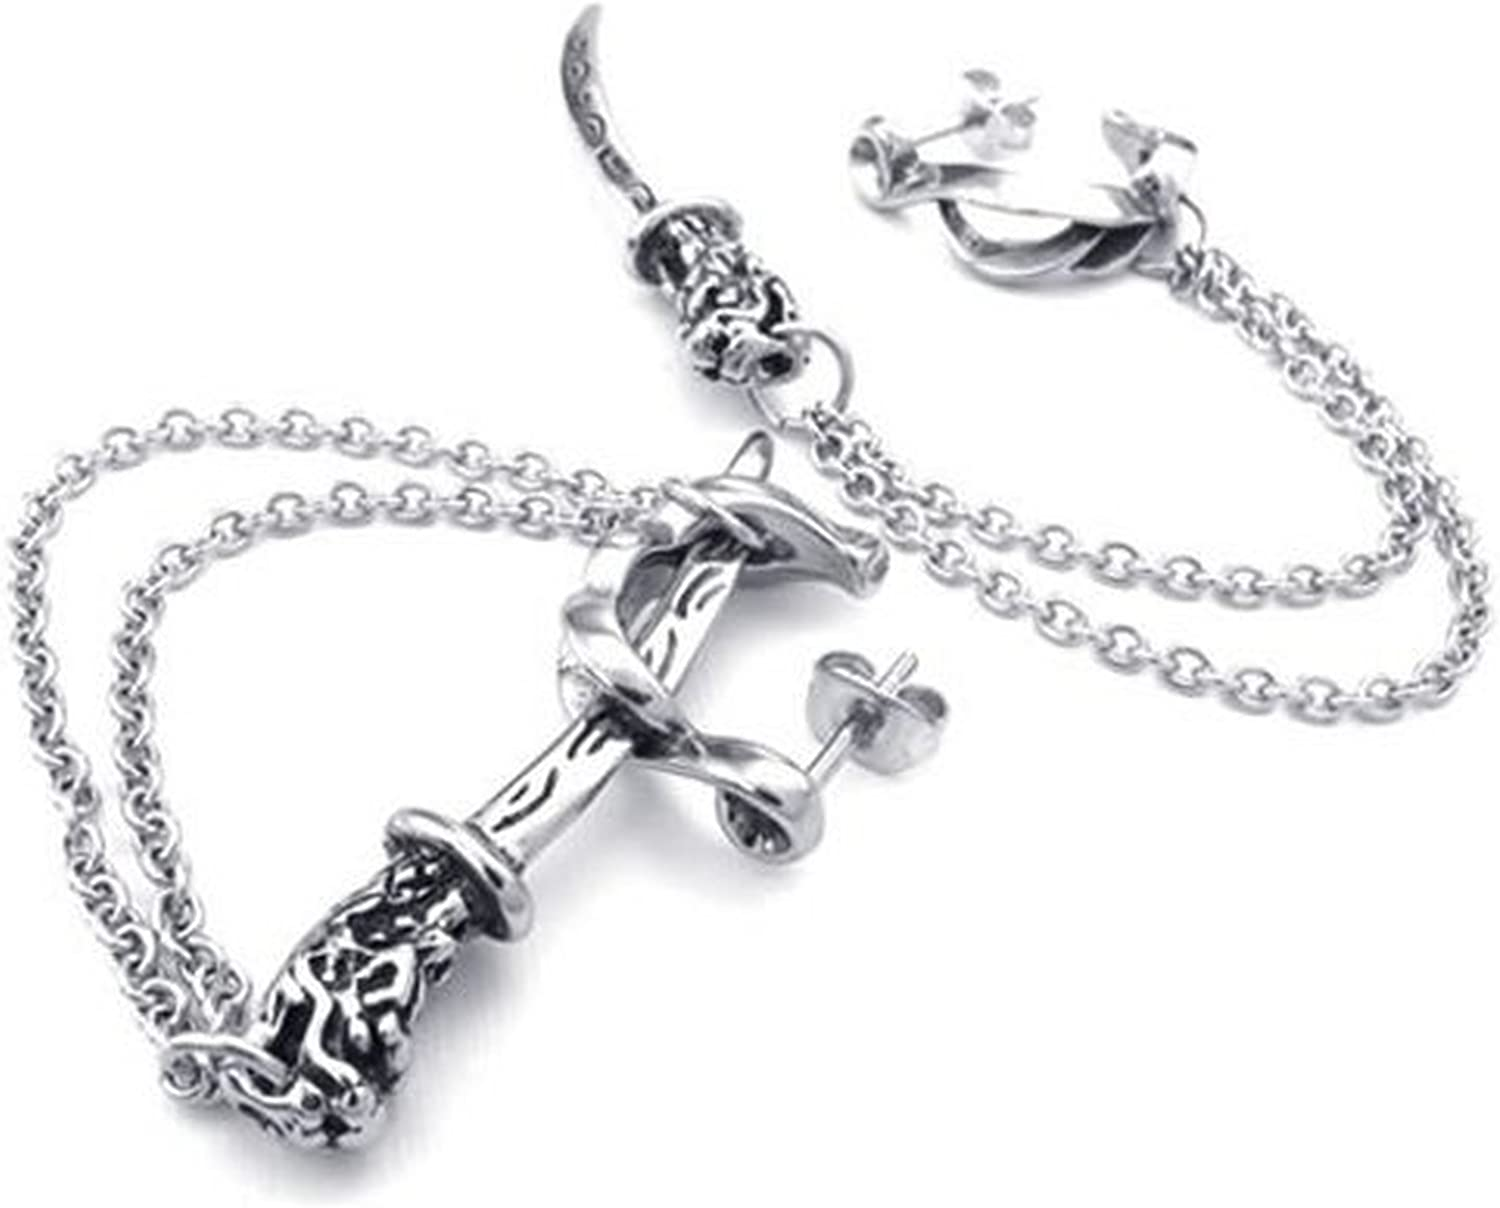 Gold Silver CLJSTORE Jewelry Mens Stainless Steel Necklace Heavy Wide Cross Links Chain